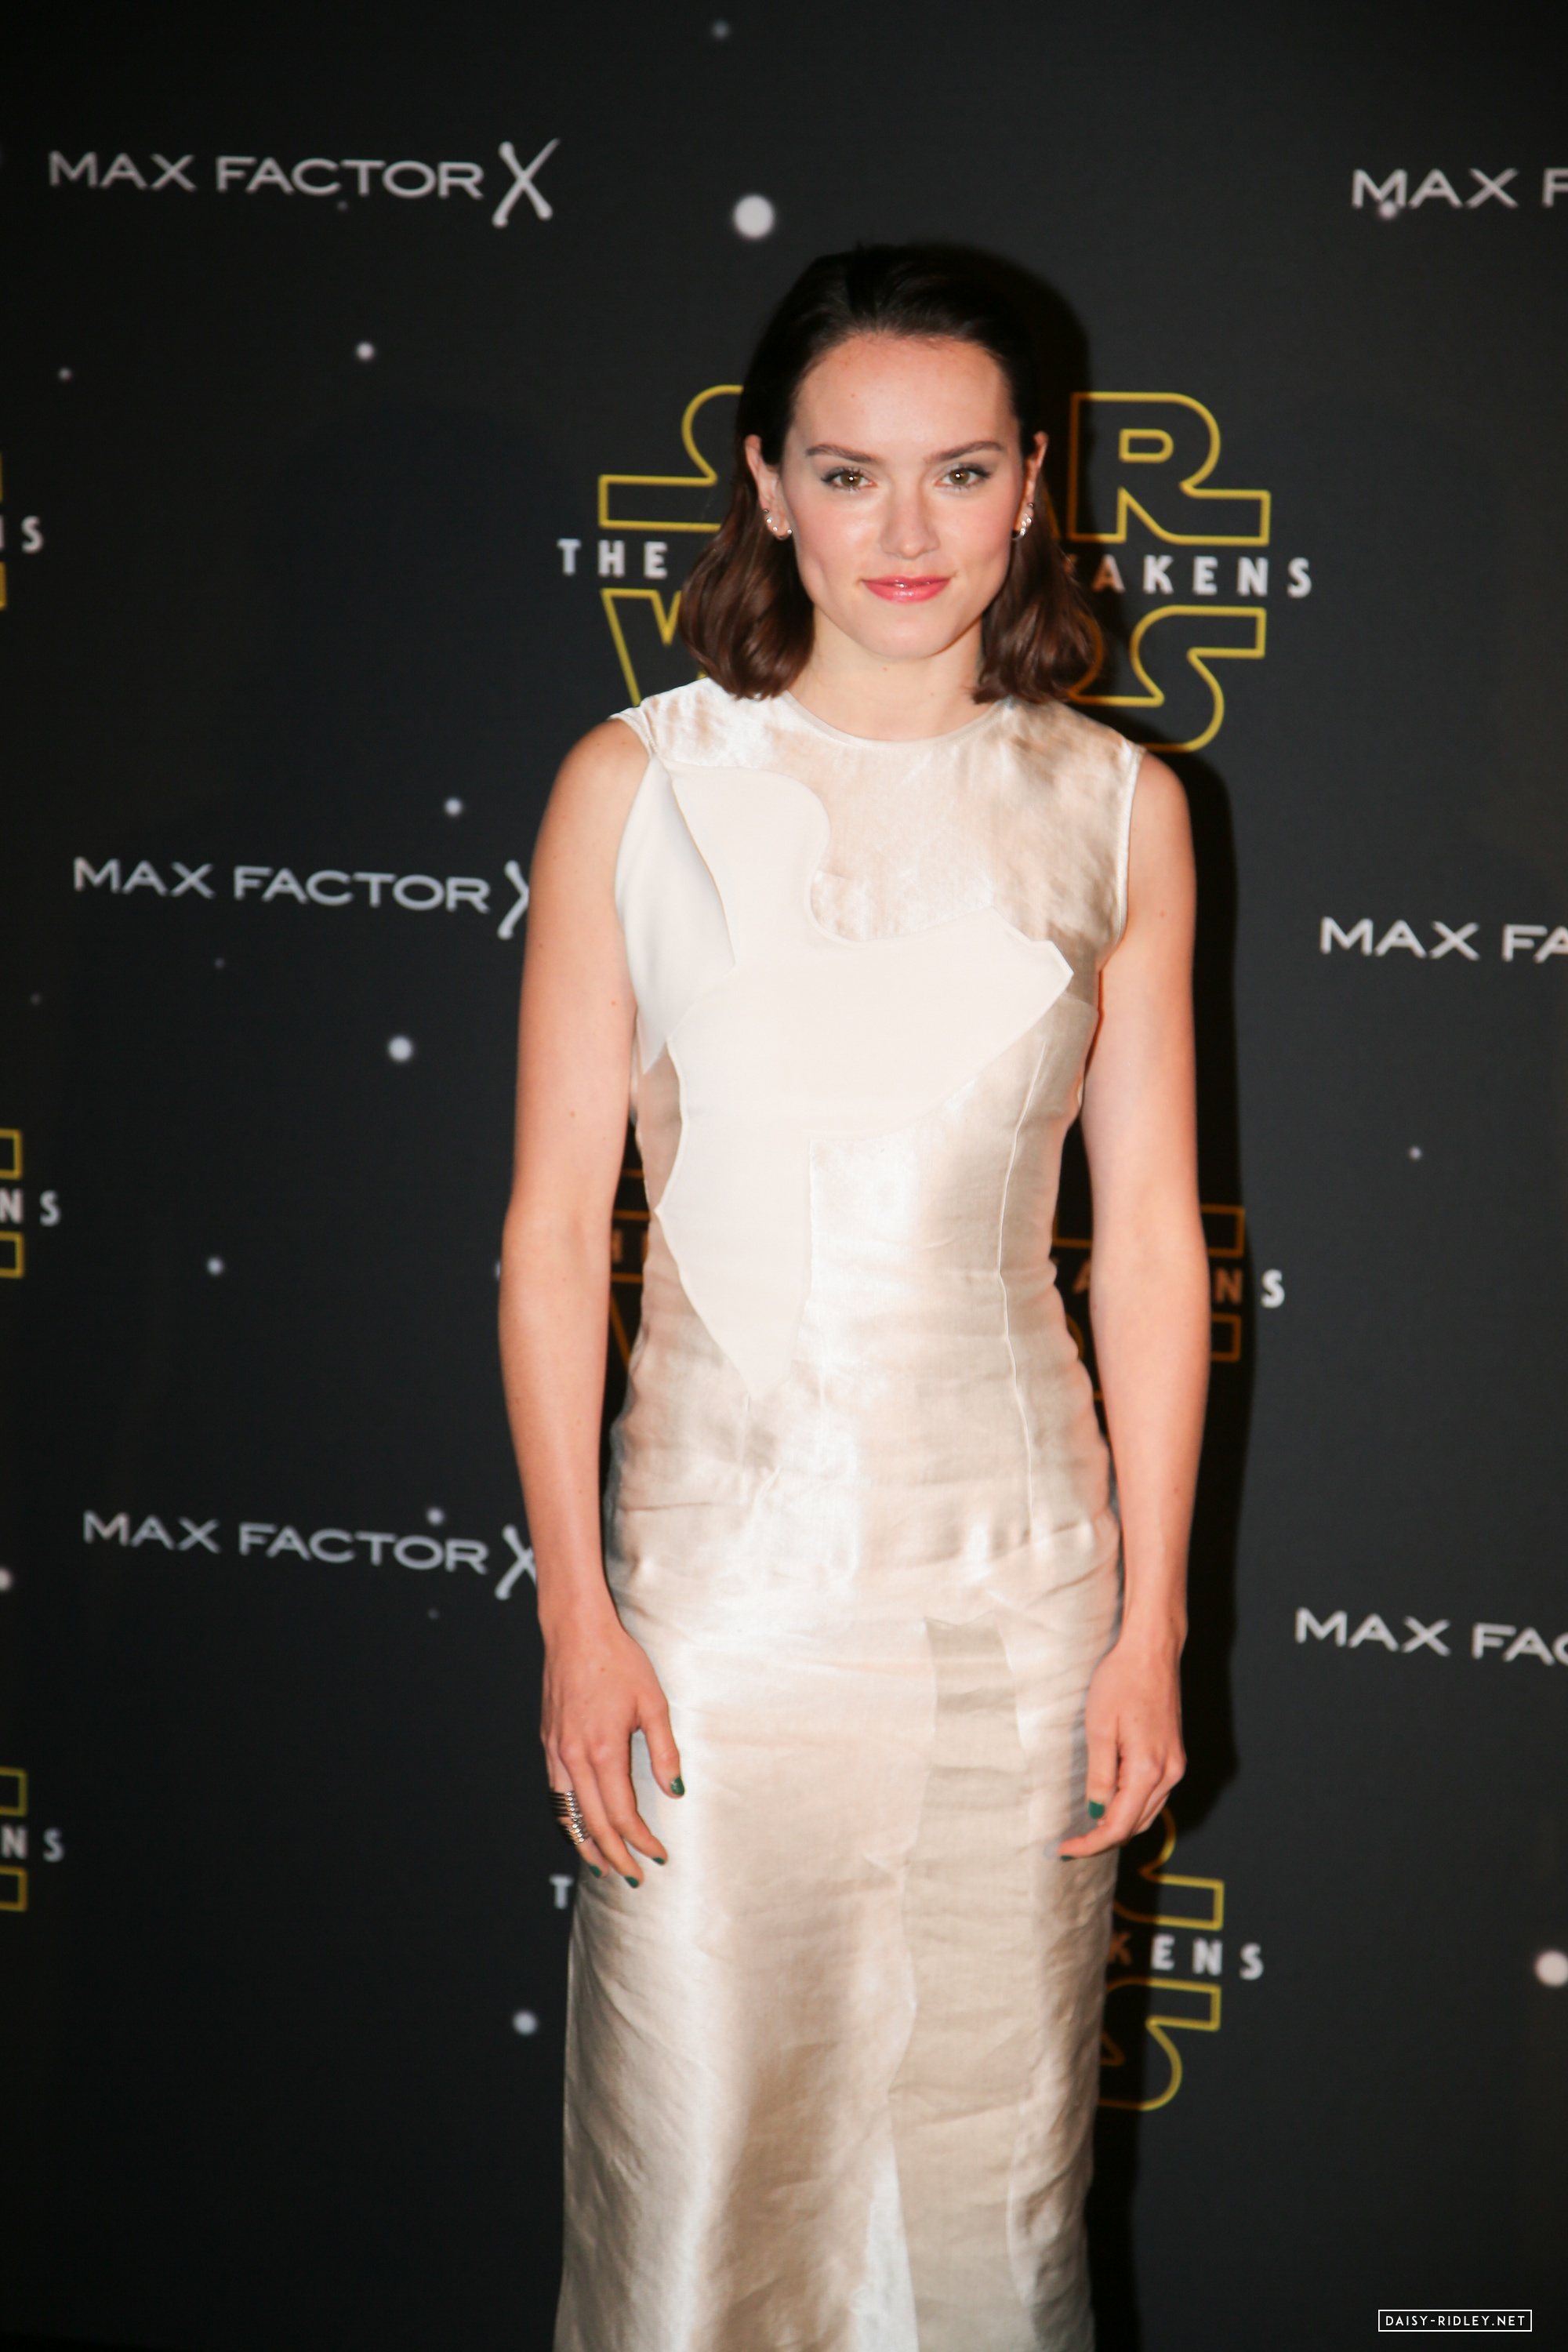 Star Wars: Fashion Finds The Force Event (November 26